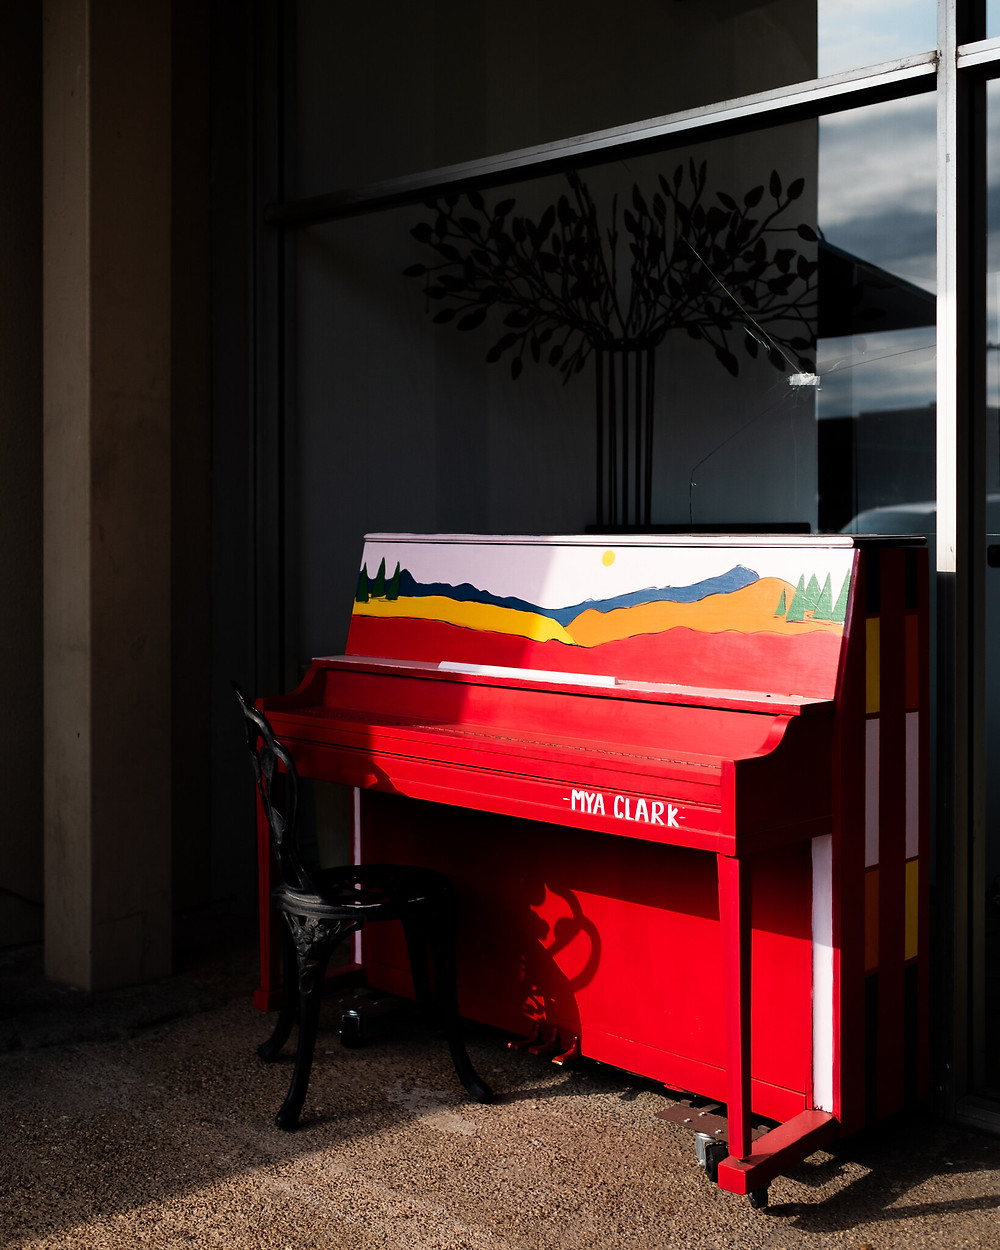 Red piano painted with trees and mountains